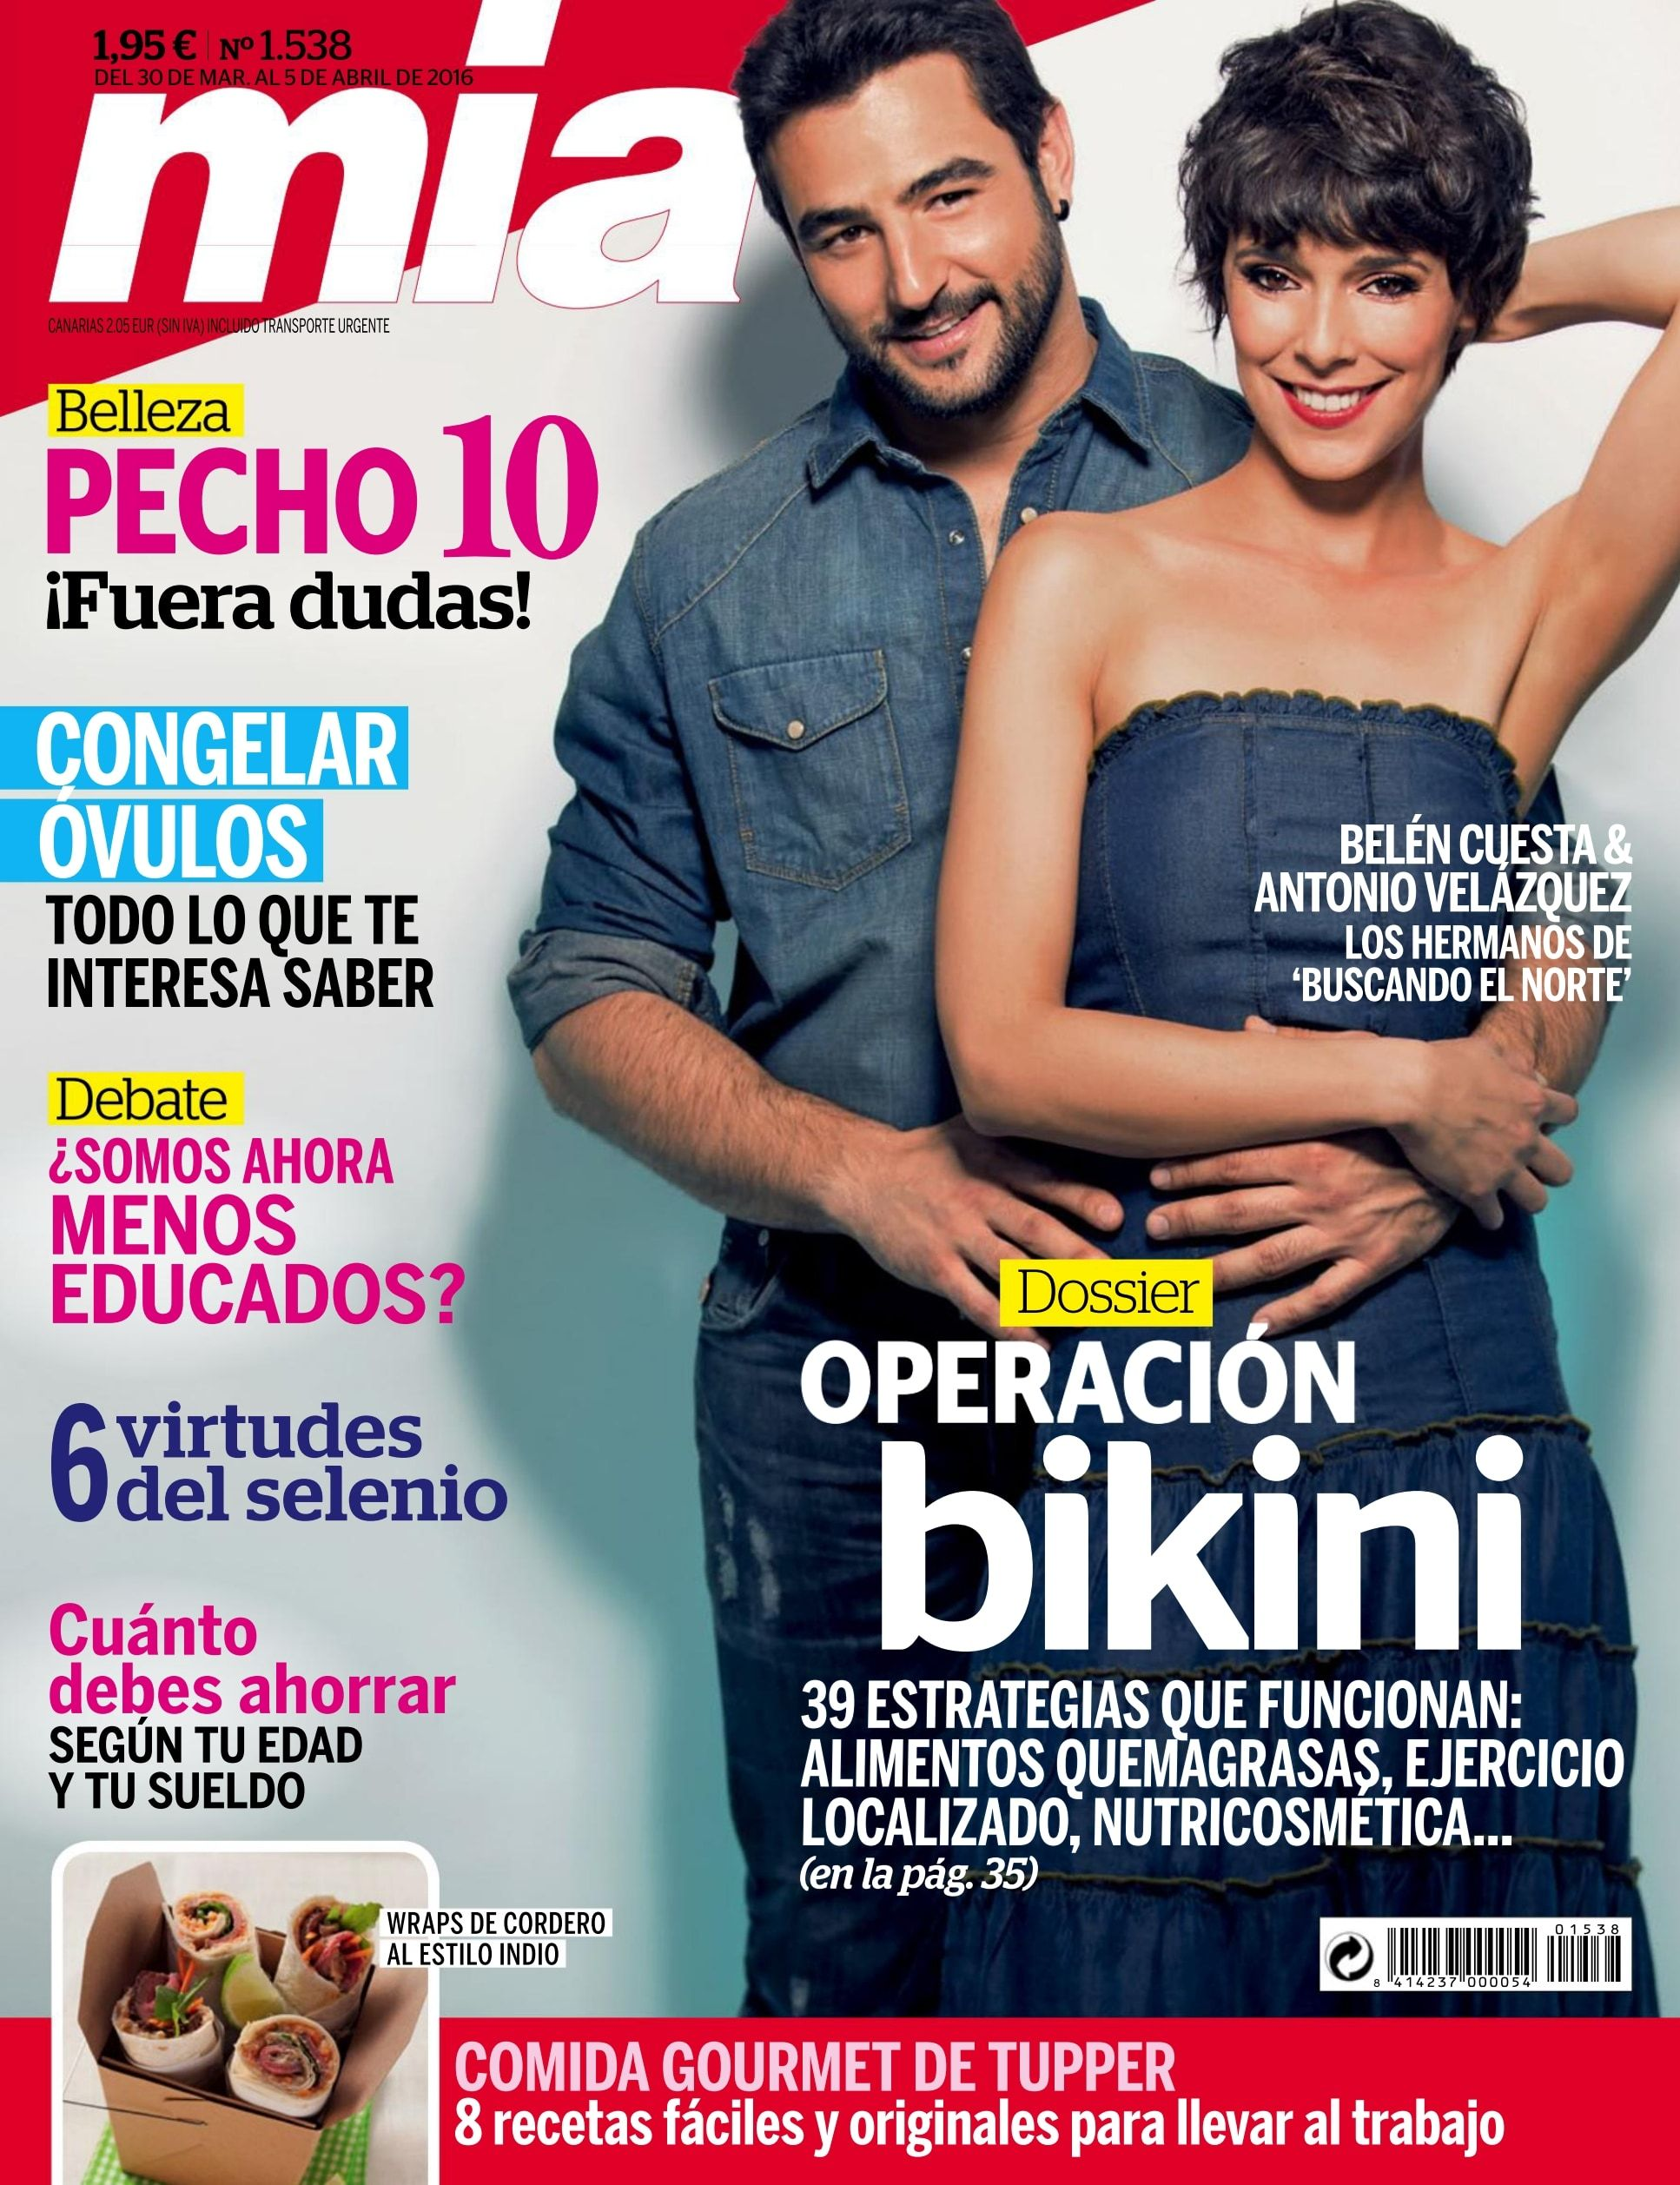 Revista m a 1536 como en m a siempre intentamos darte for Revistas de espectaculos de esta semana